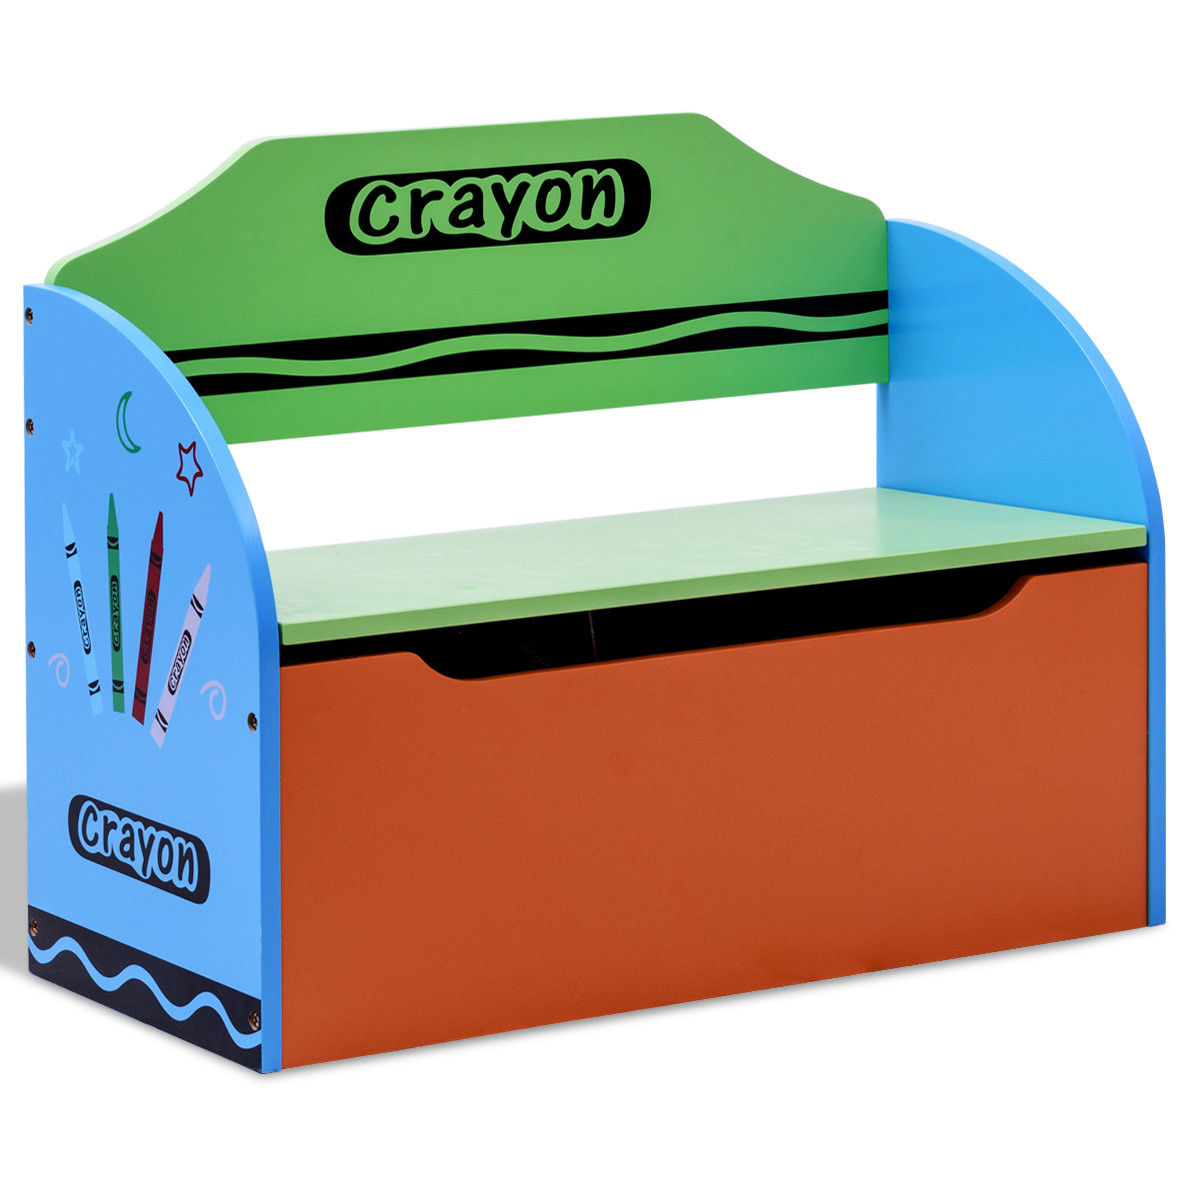 Crayon Themed Wood Toy Storage Box And Bench For Kids